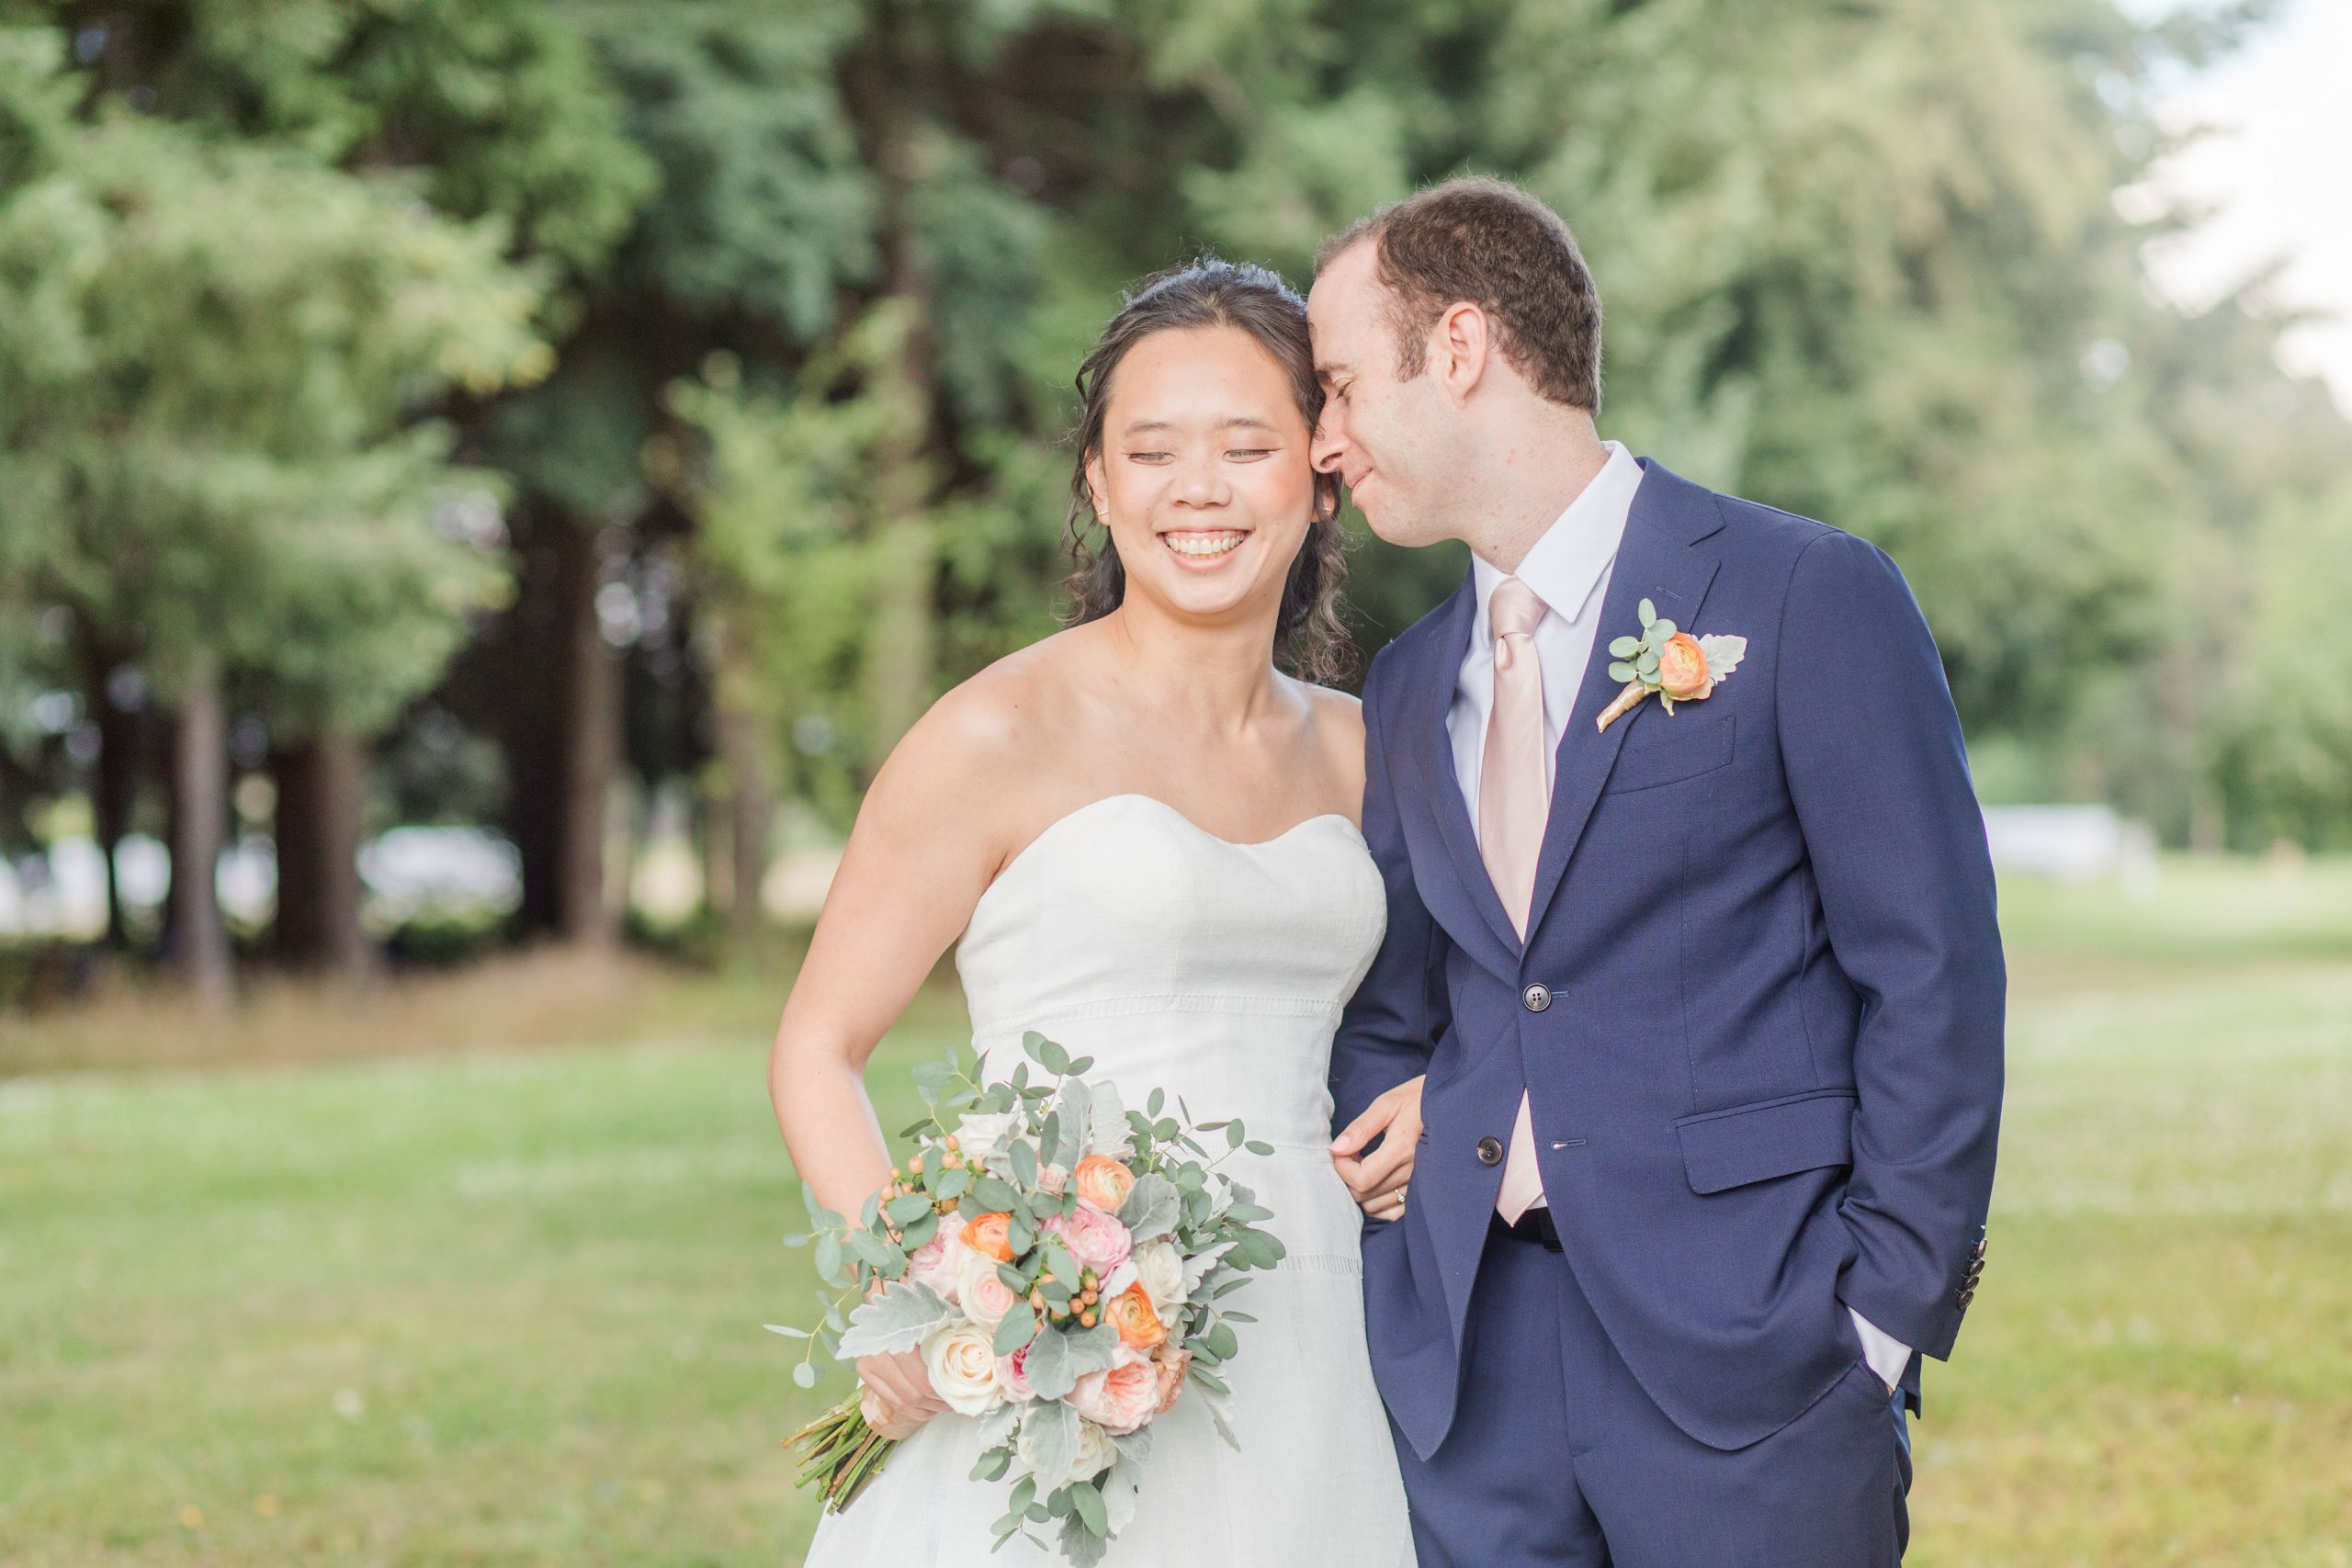 A beautiful and intimate outdoor wedding on Sauvie's Island in Portland, OR